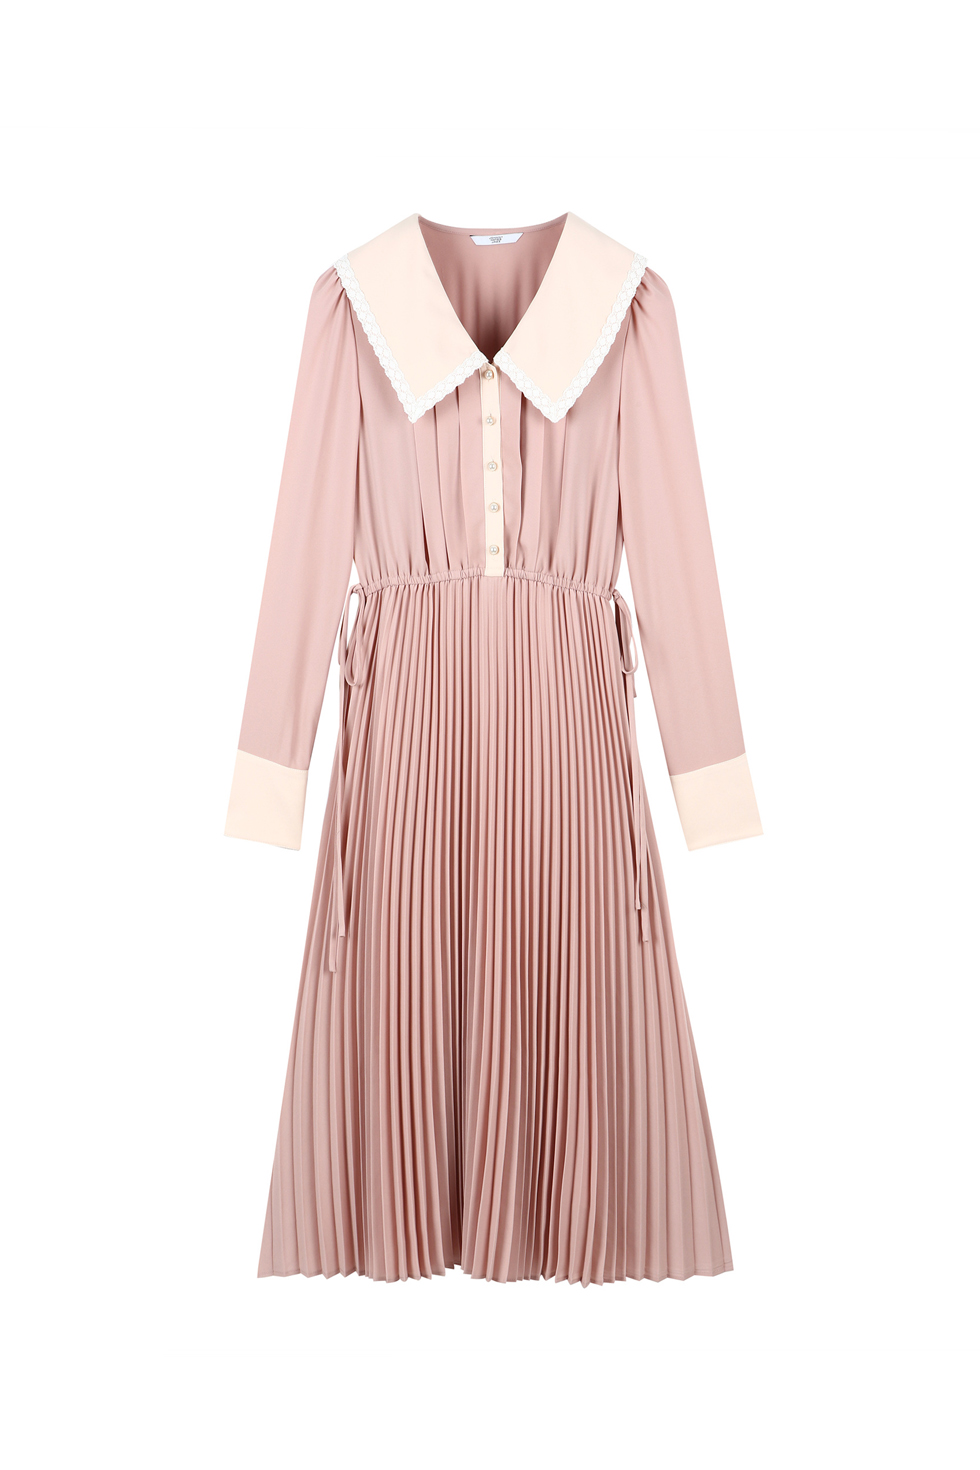 BIG COLLAR PLEATS DRESS - PINK